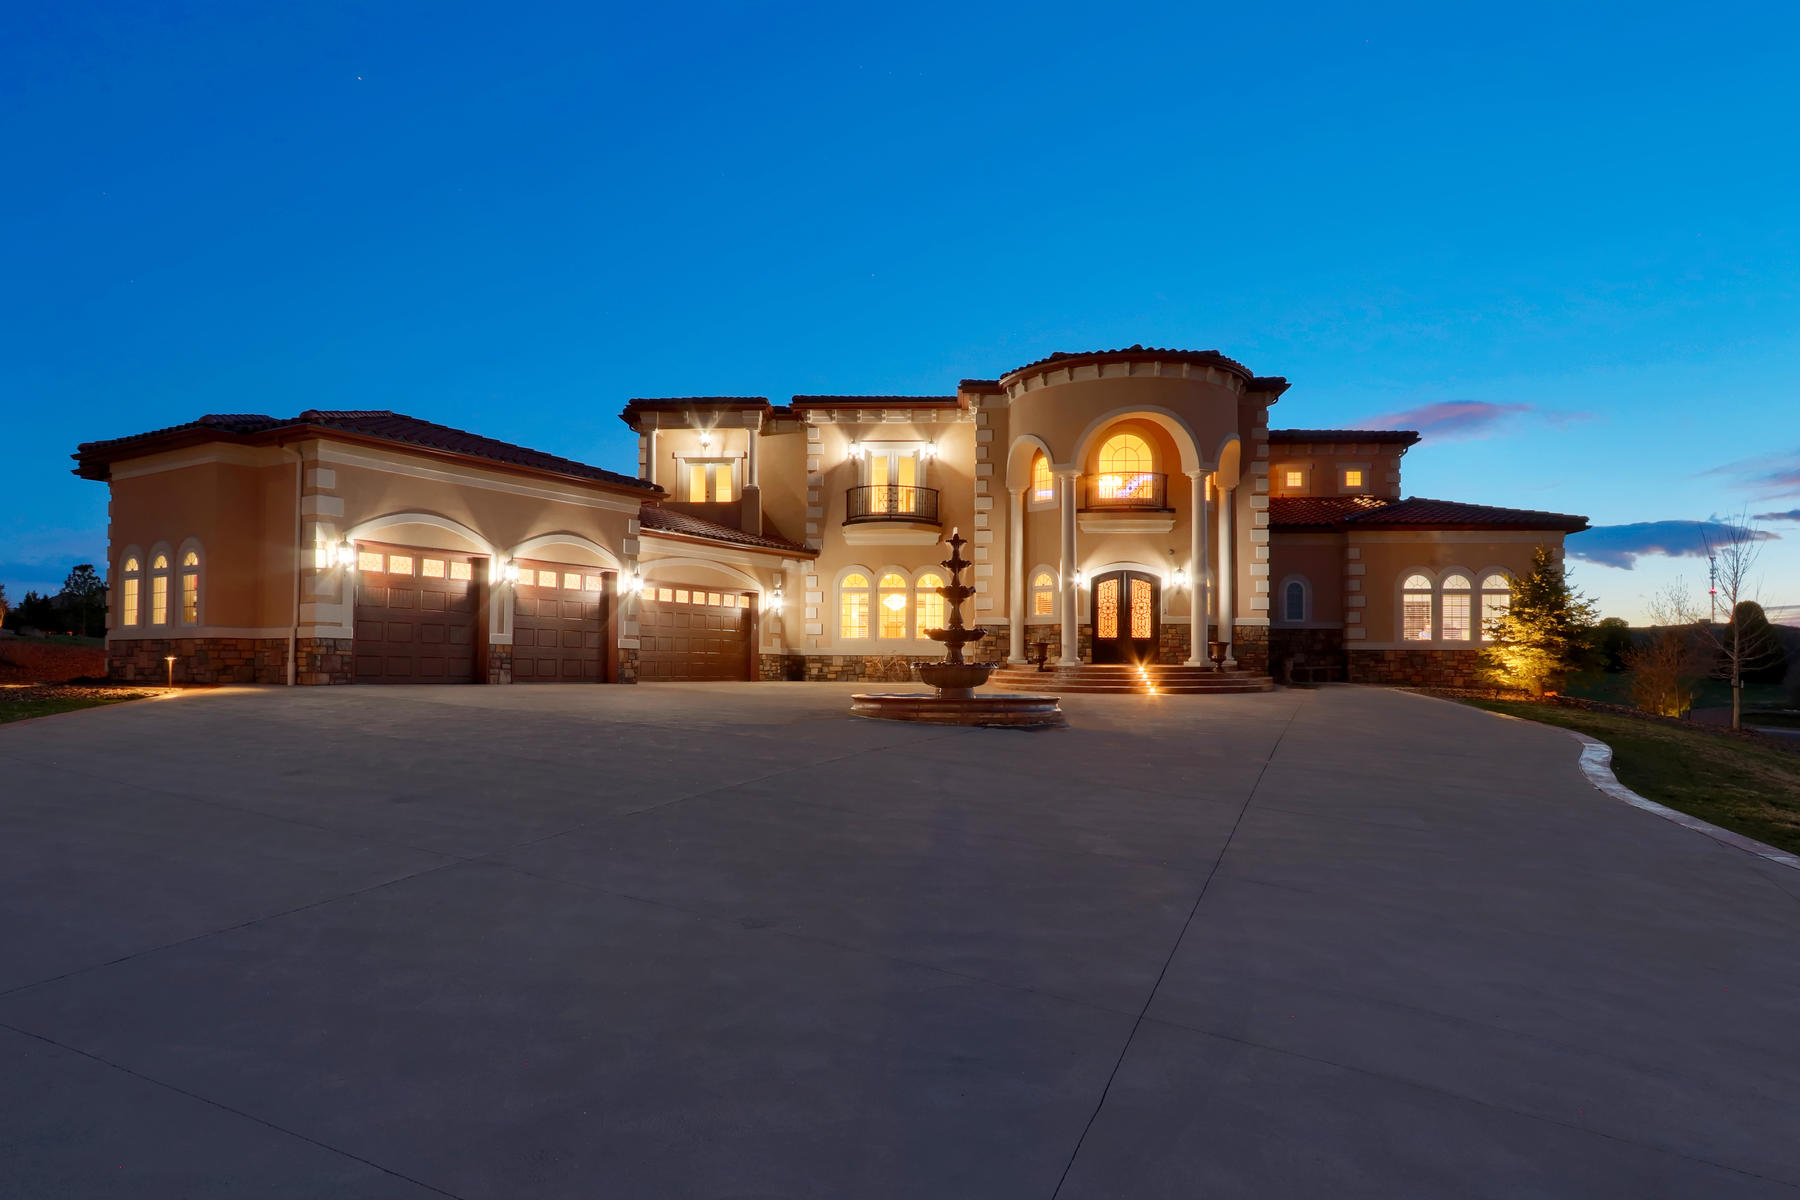 Single Family Homes for Sale at A Dramatic Residence of Distinction 6930 Tremolite Dr Castle Rock, Colorado 80108 United States